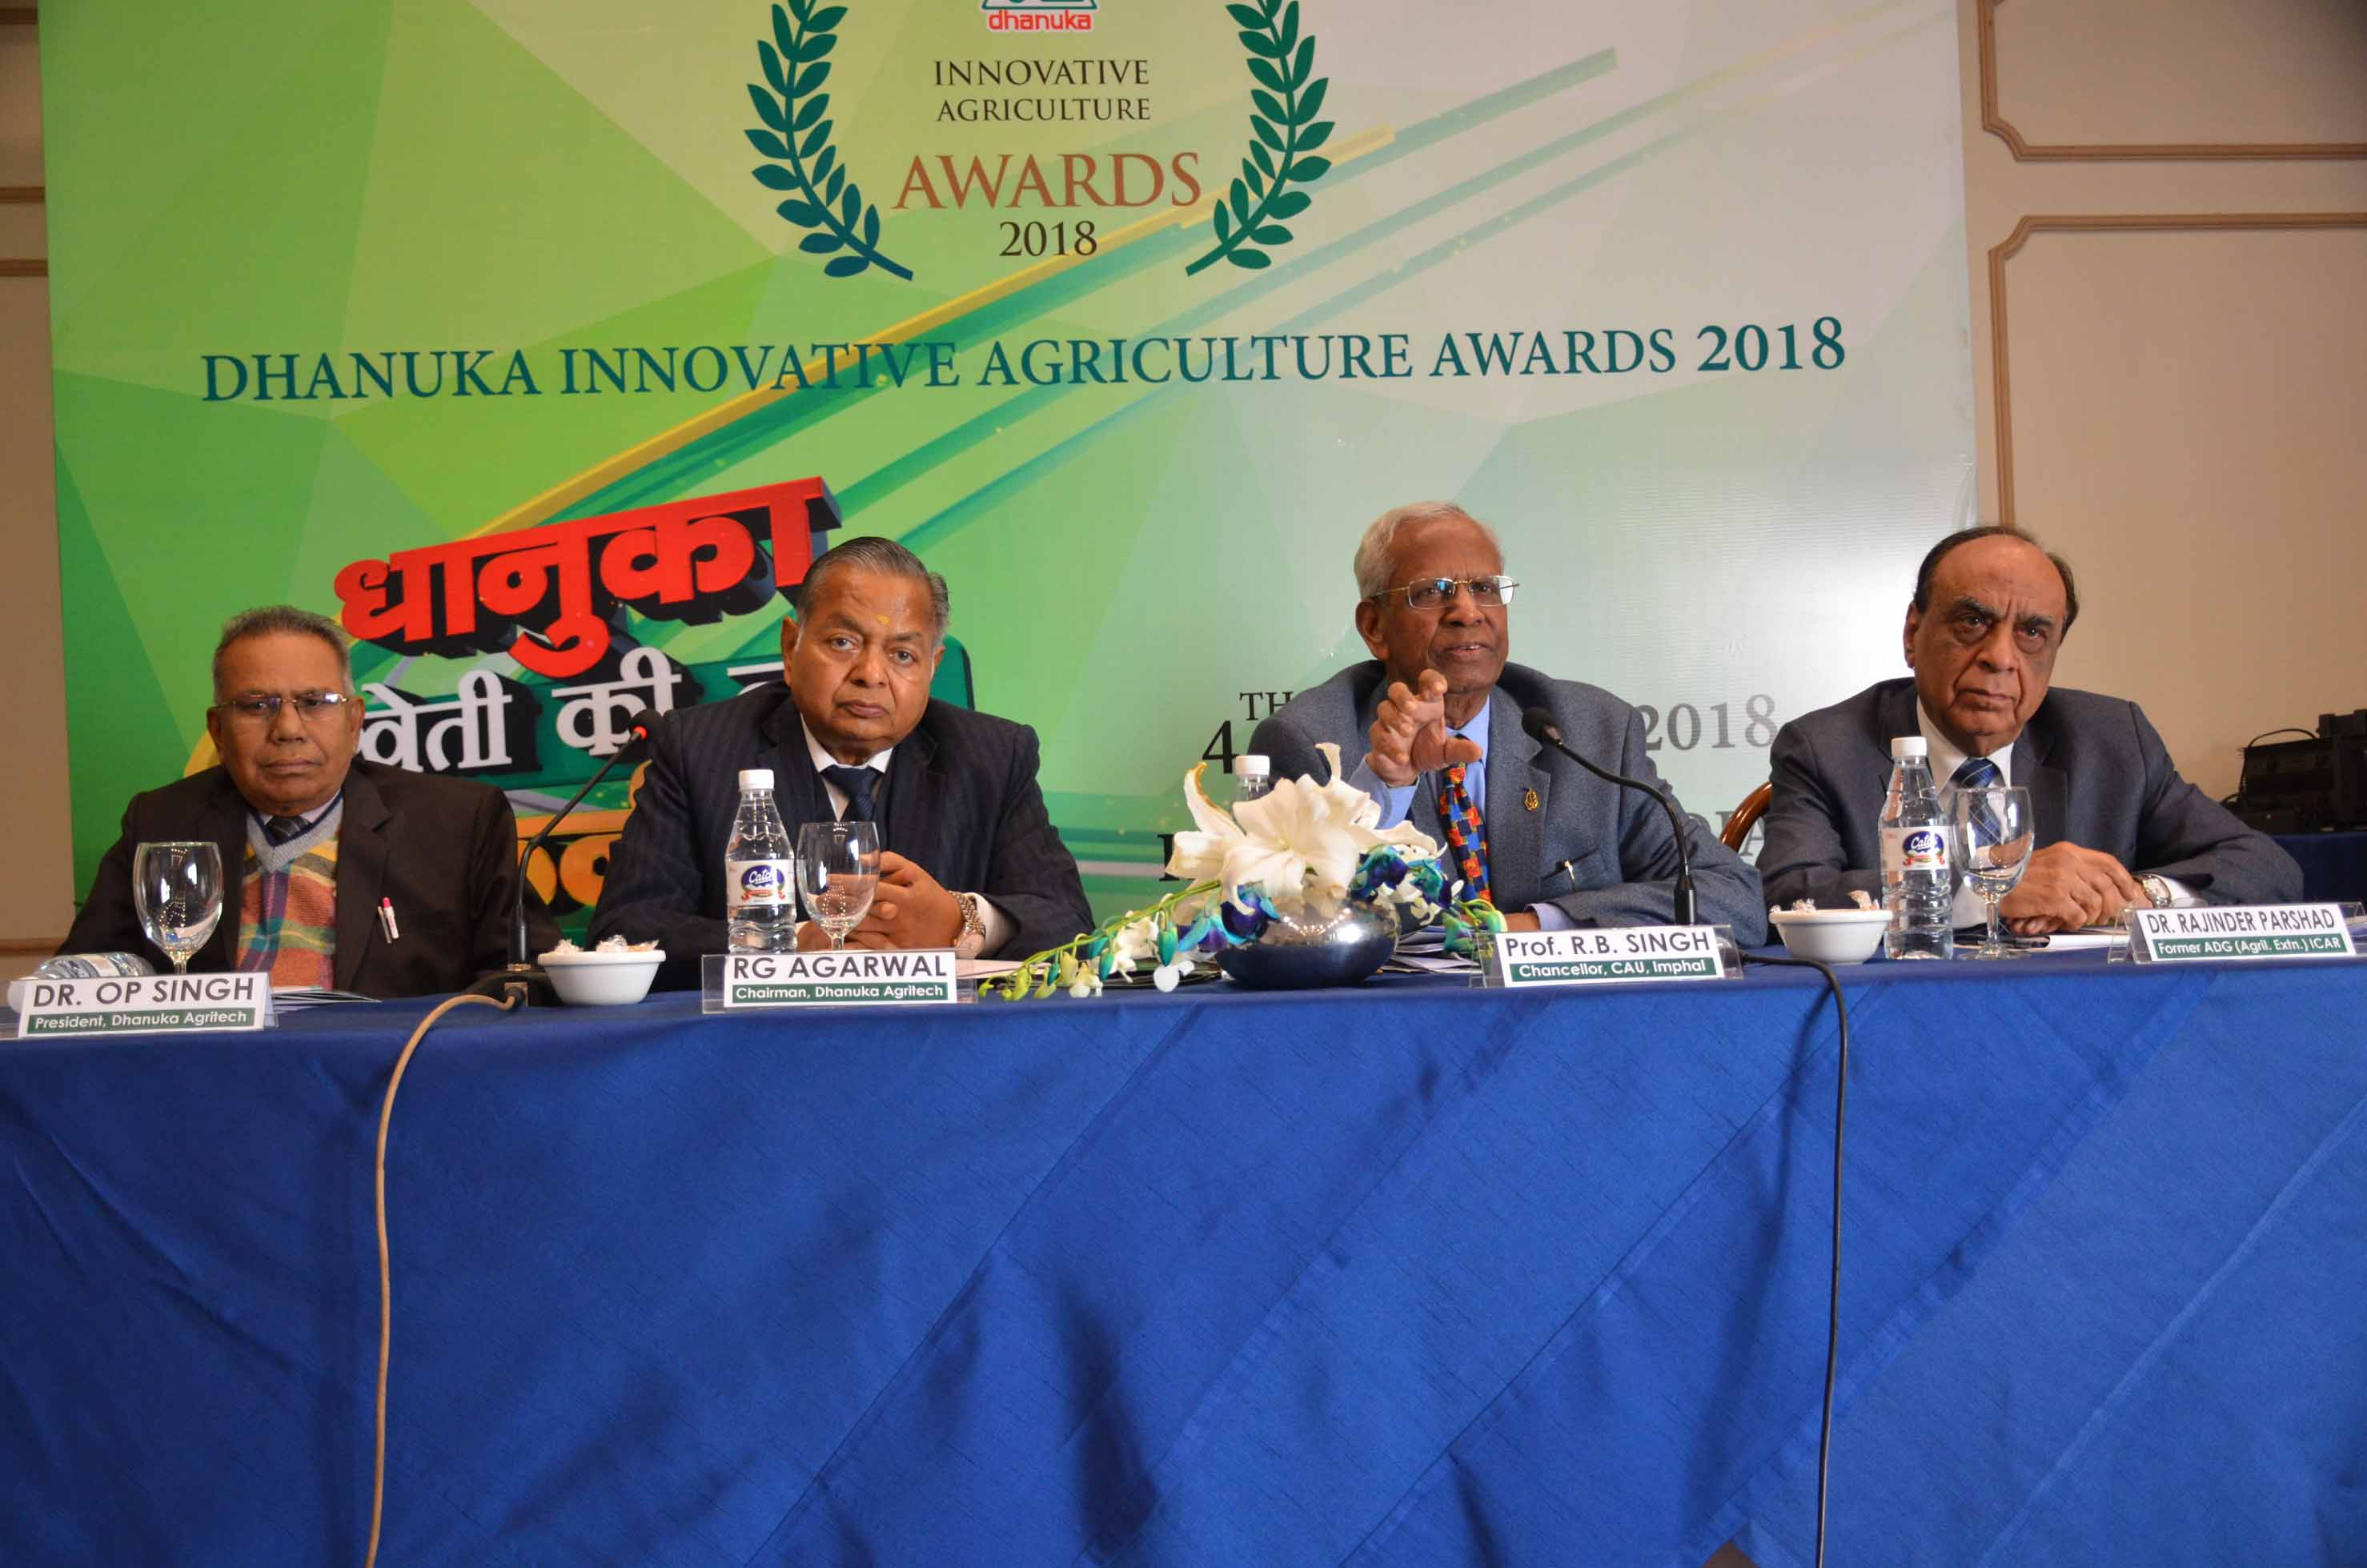 india achievement in agriculture Against the target of 45 per cent per annum growth rate of agricultural gdp, the achievement was only 181 per cent per annum, and against the target of 305 per cent per annum growth rate of foodgrains production, the achievement was only 123 per cent which is much less than the growth rate of our.